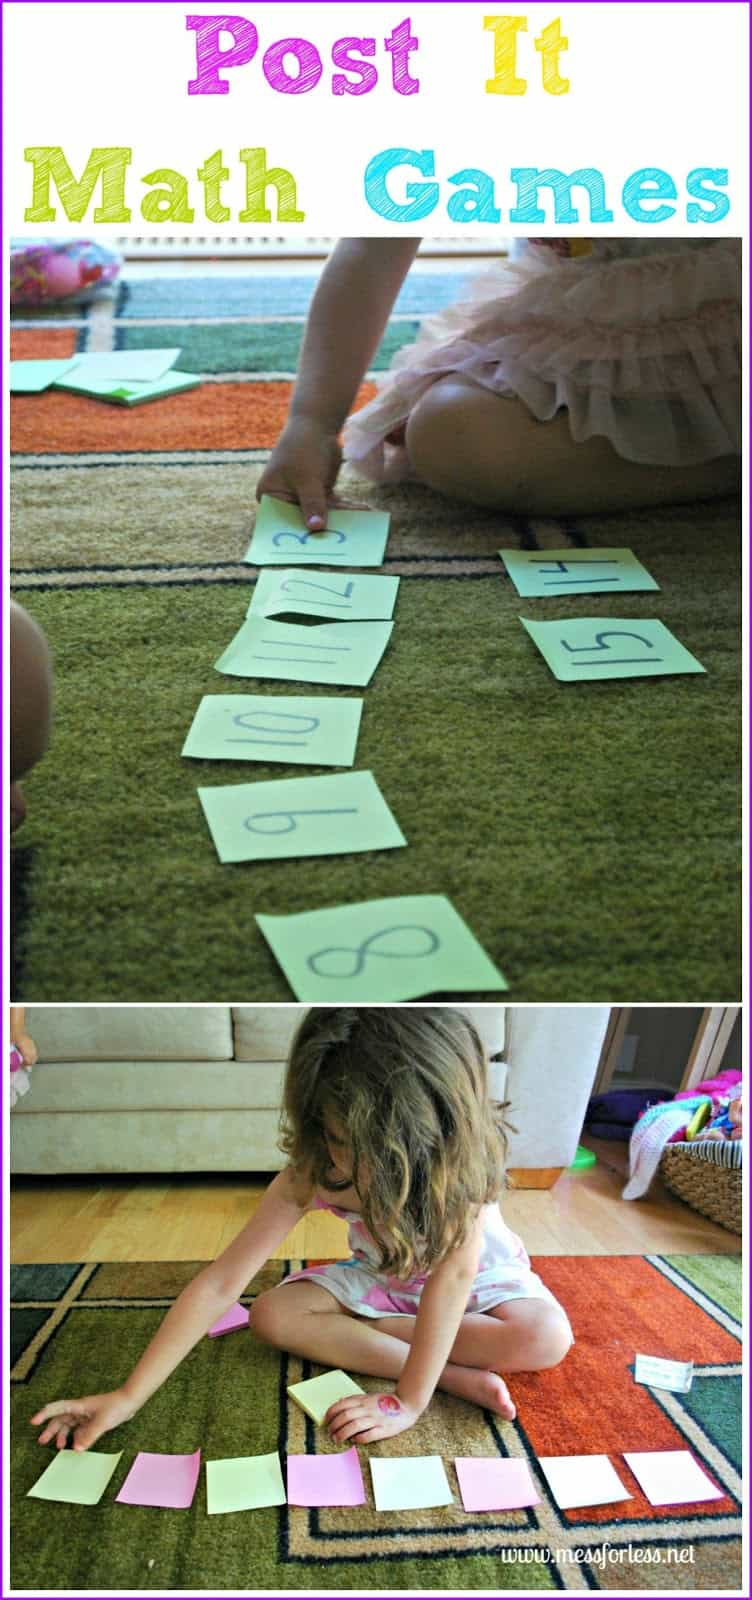 Post-It Math Games - Get Ready for K Through Play - Mess for Less